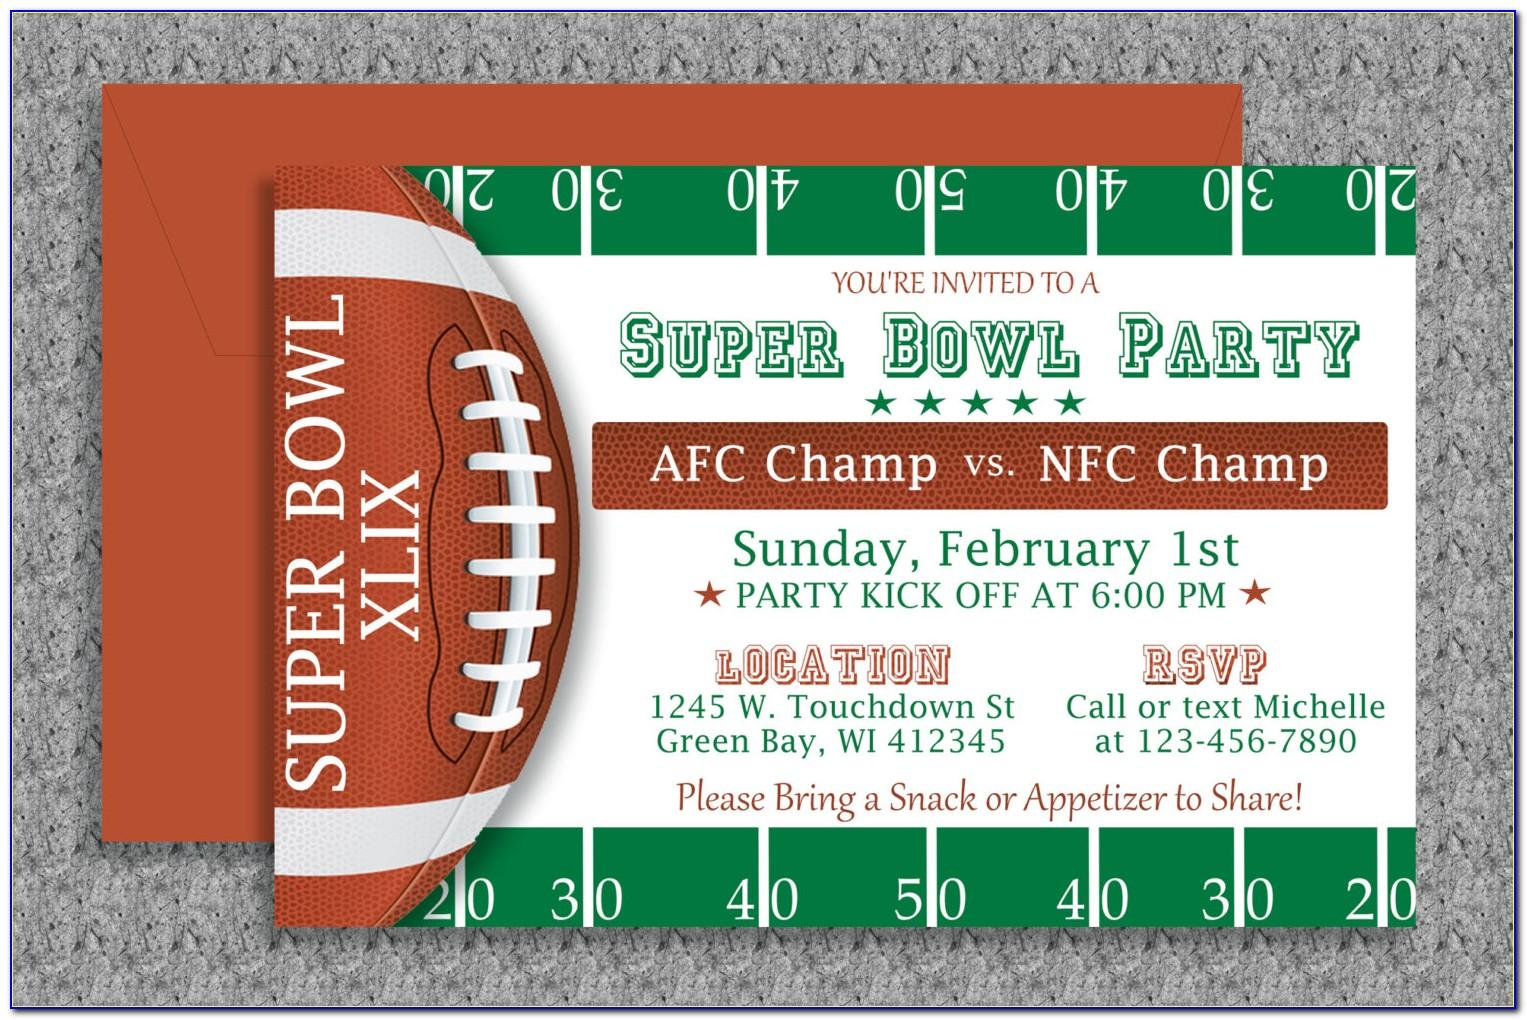 Super Bowl Party Invitation Templates Free